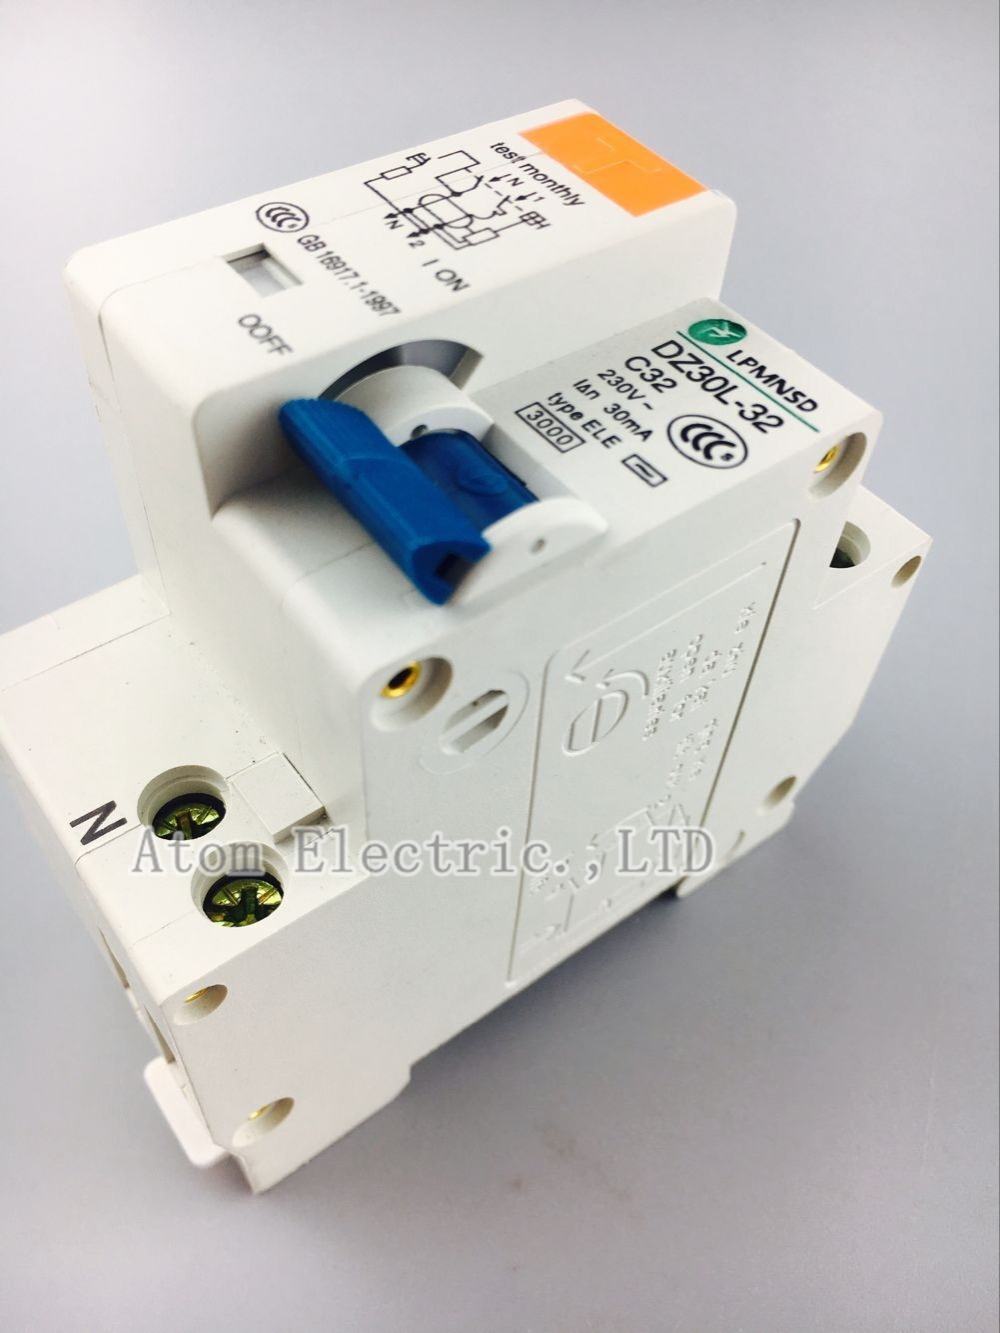 Beautiful rcd mcb wiring diagram photo everything you need to know perfect rcd mcb wiring diagram collection electrical and wiring cheapraybanclubmaster Choice Image